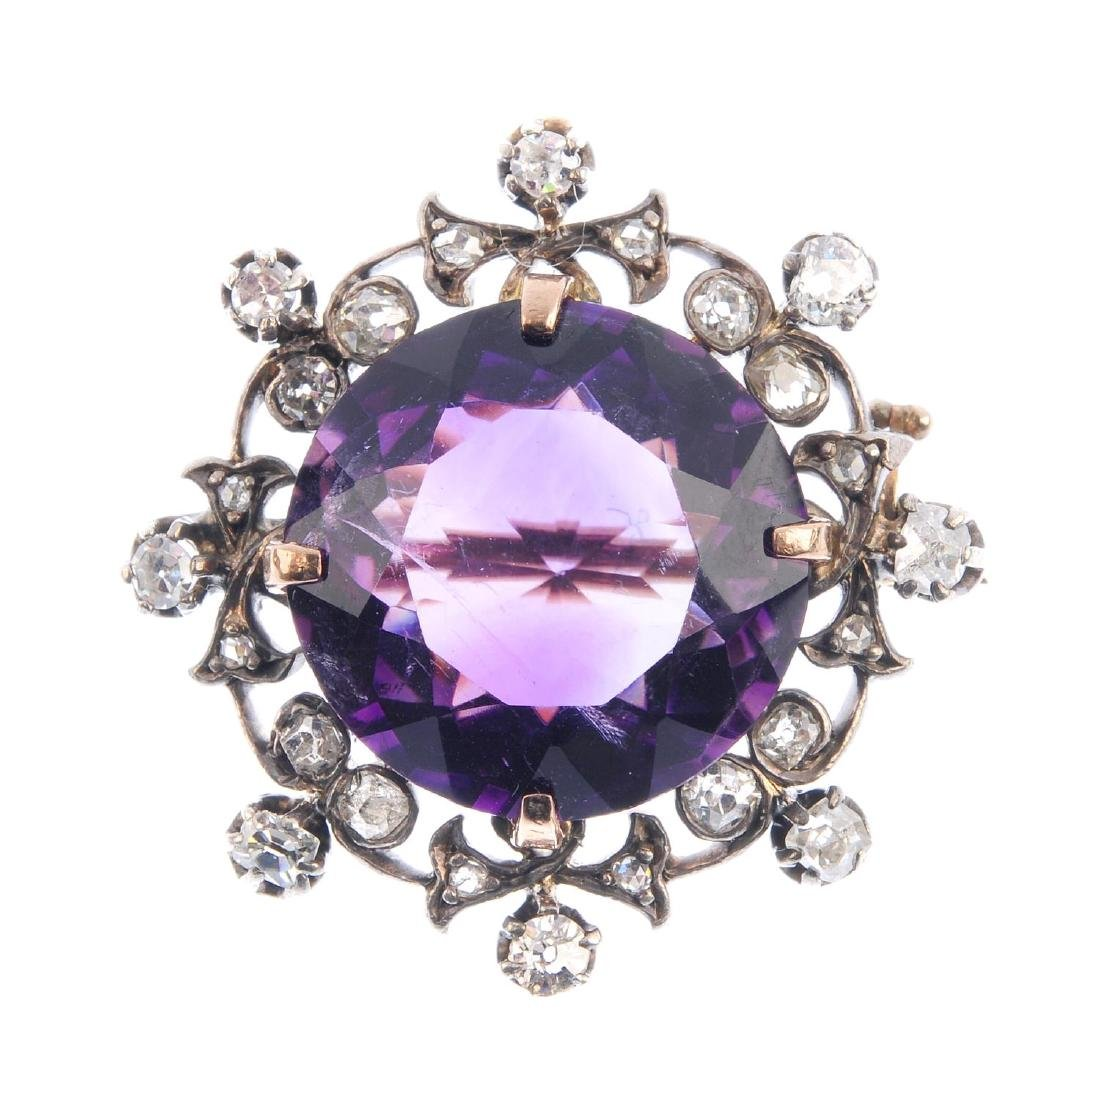 An early 20th century amethyst and diamond brooch. The